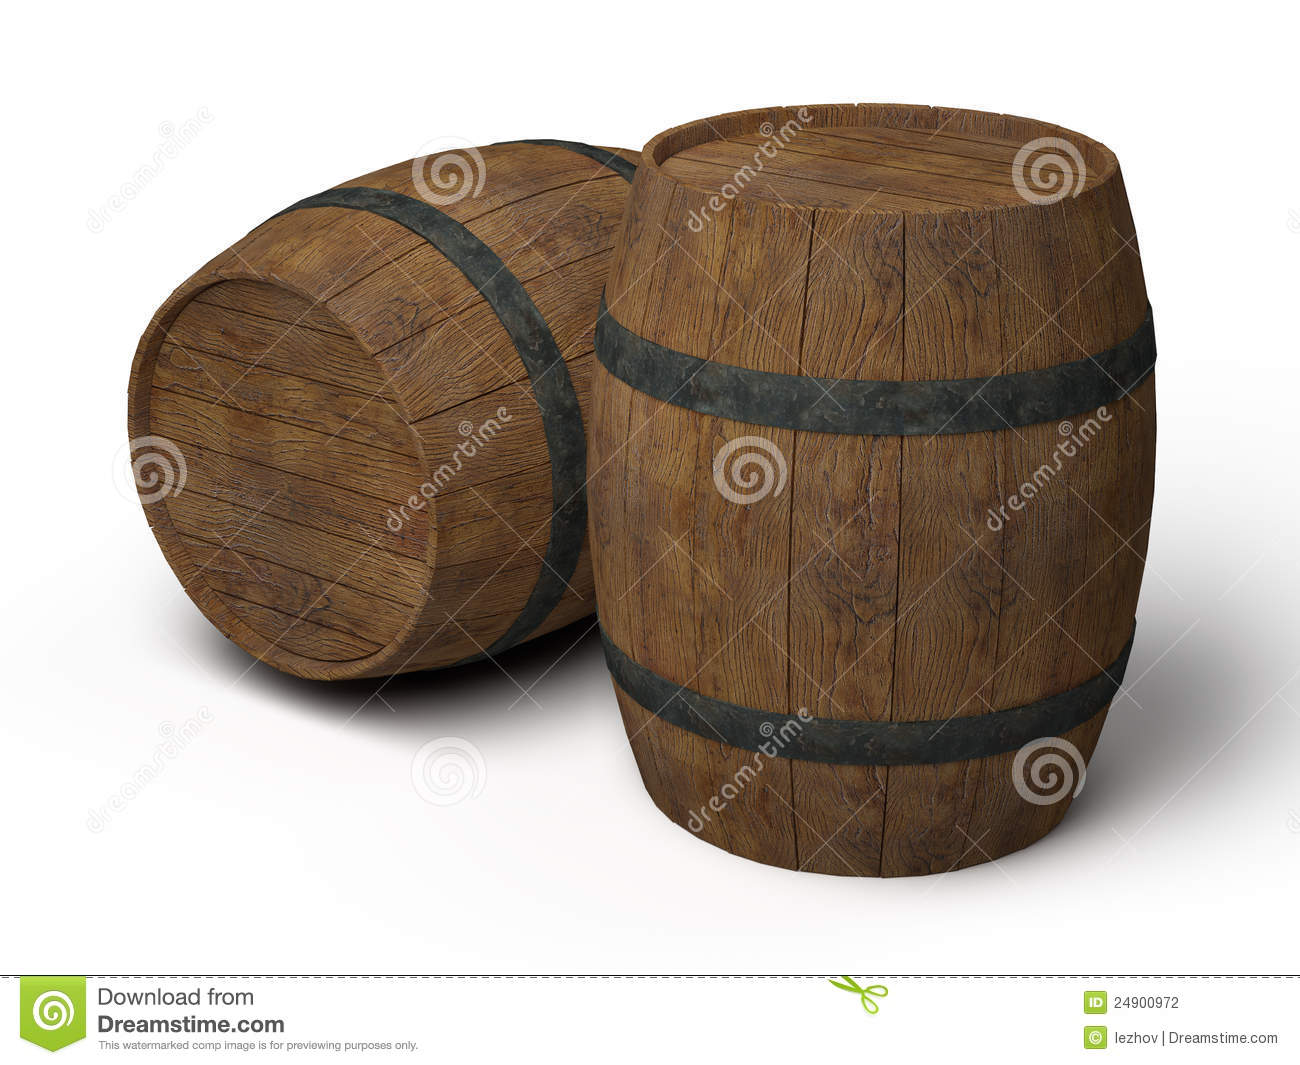 how to draw an old wooden barrel